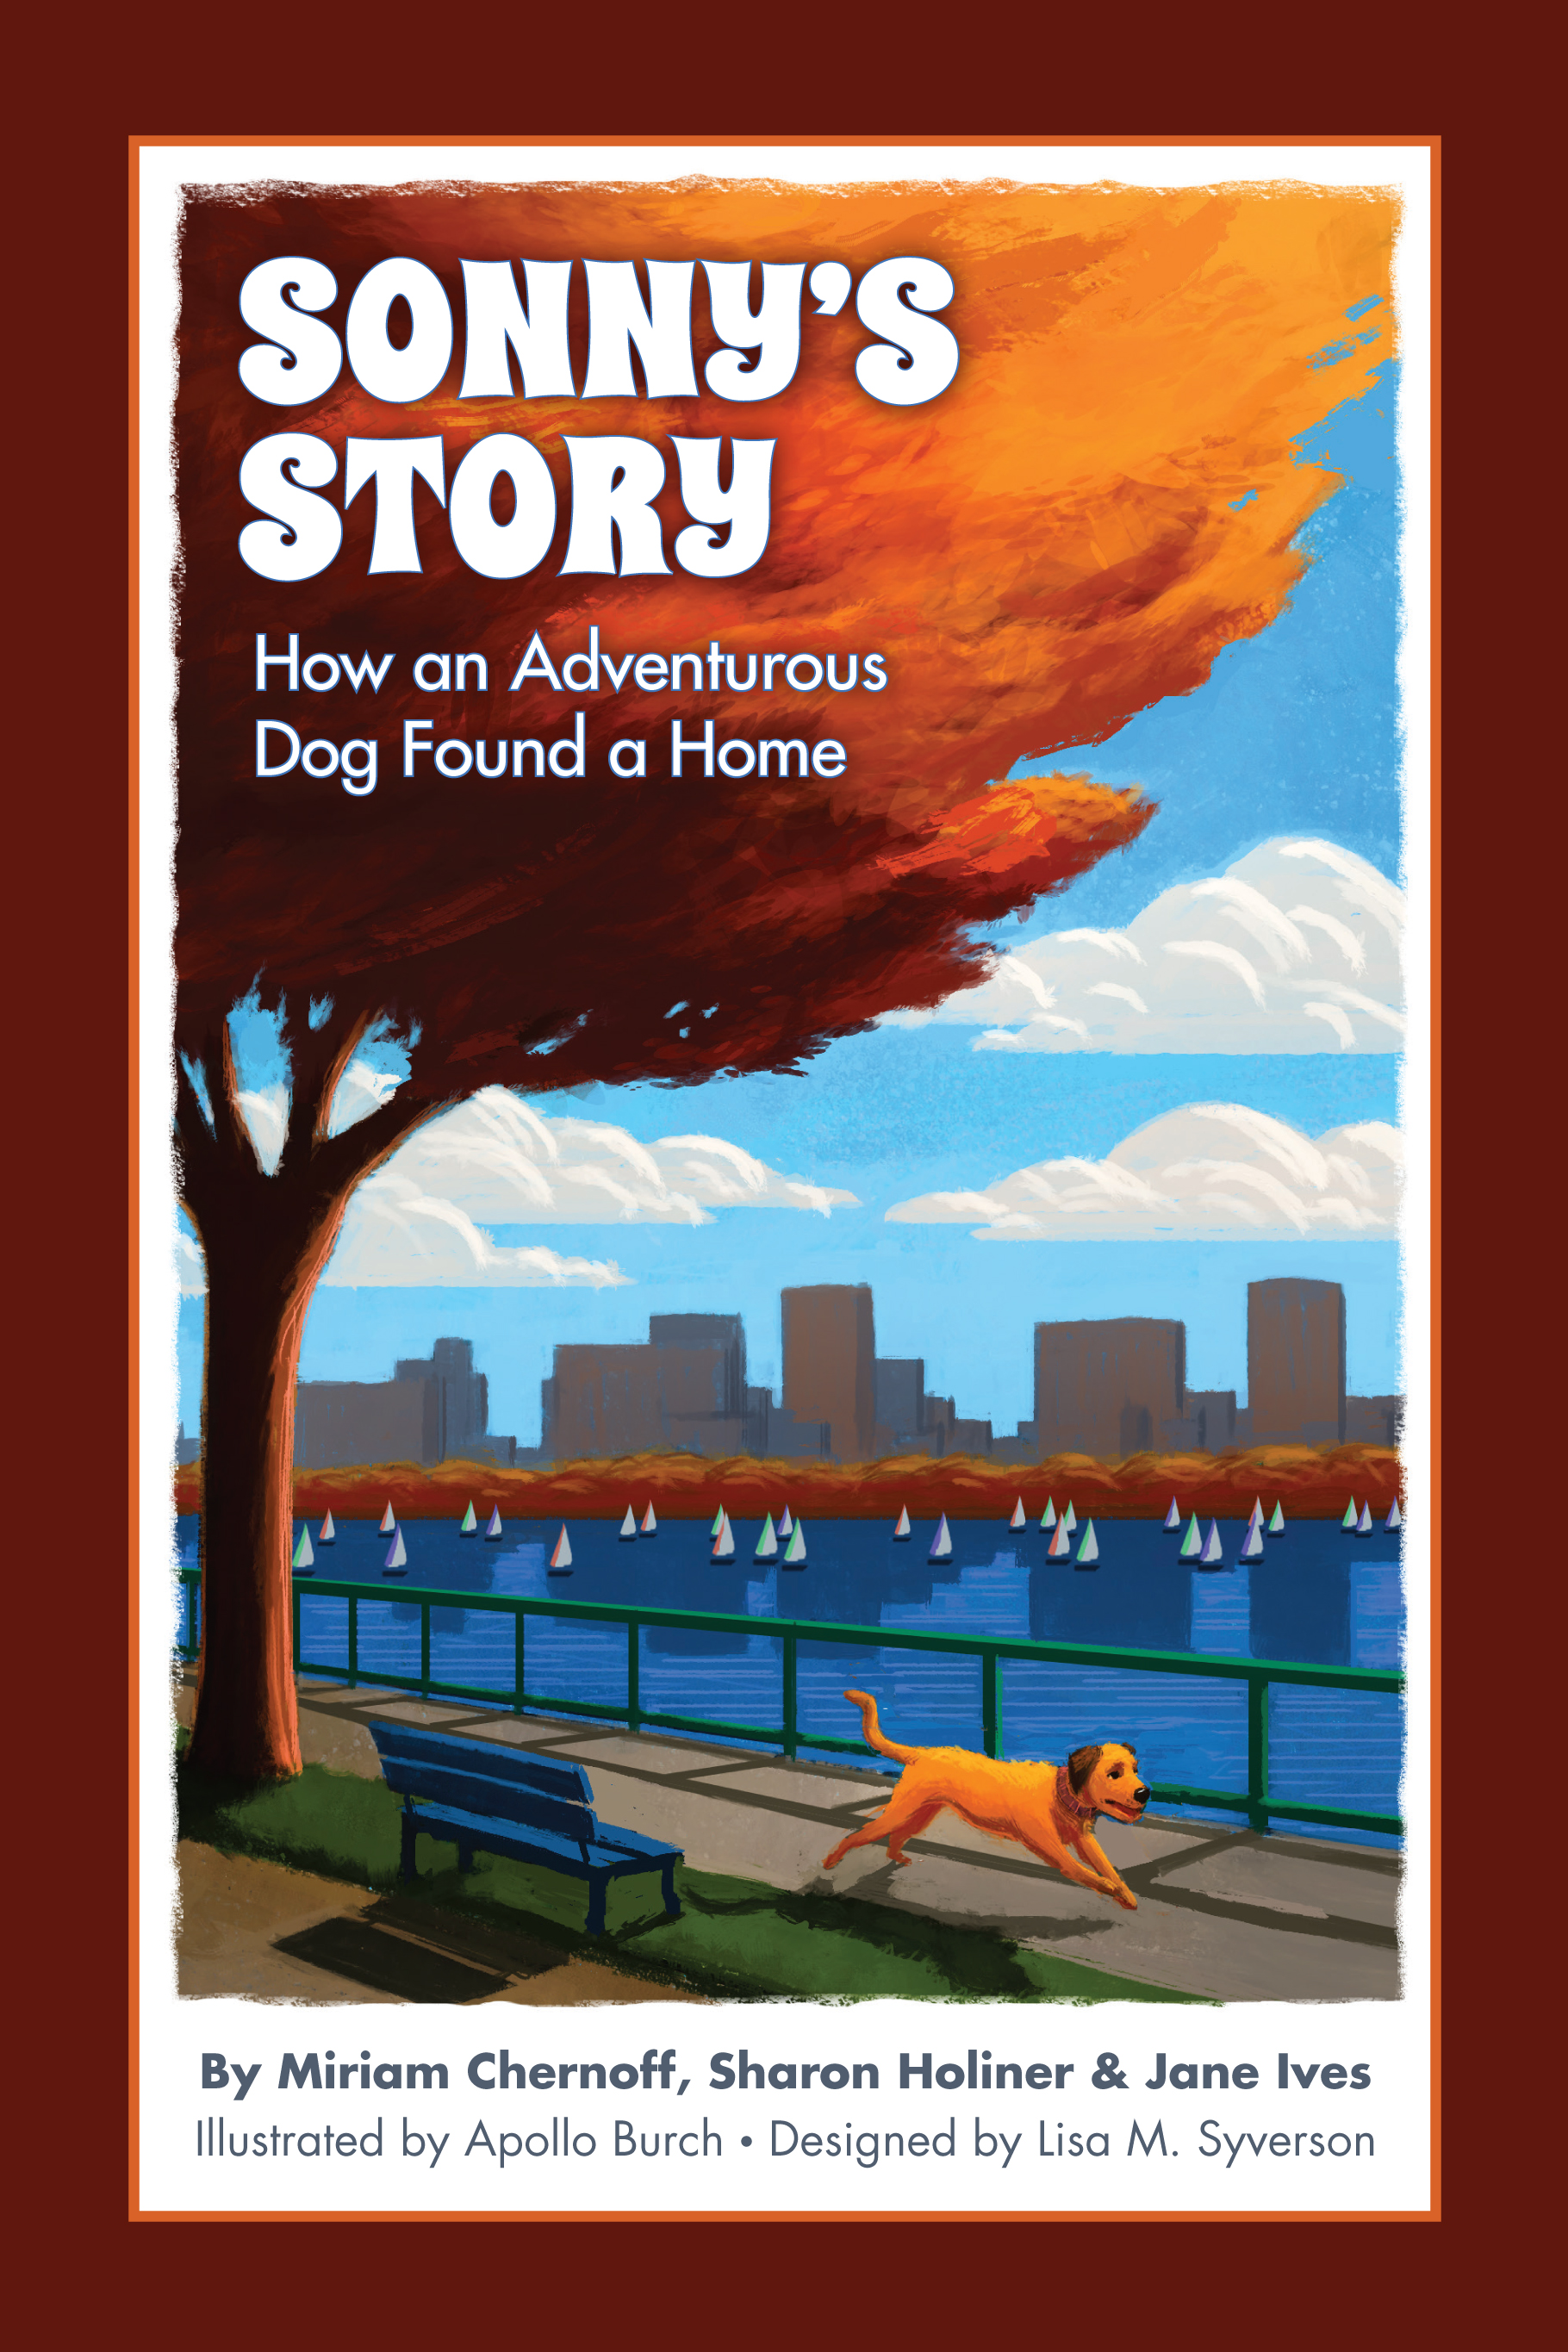 Sonny's Story: How an Adventurous Dog Found a Home by Miriam Chernoff